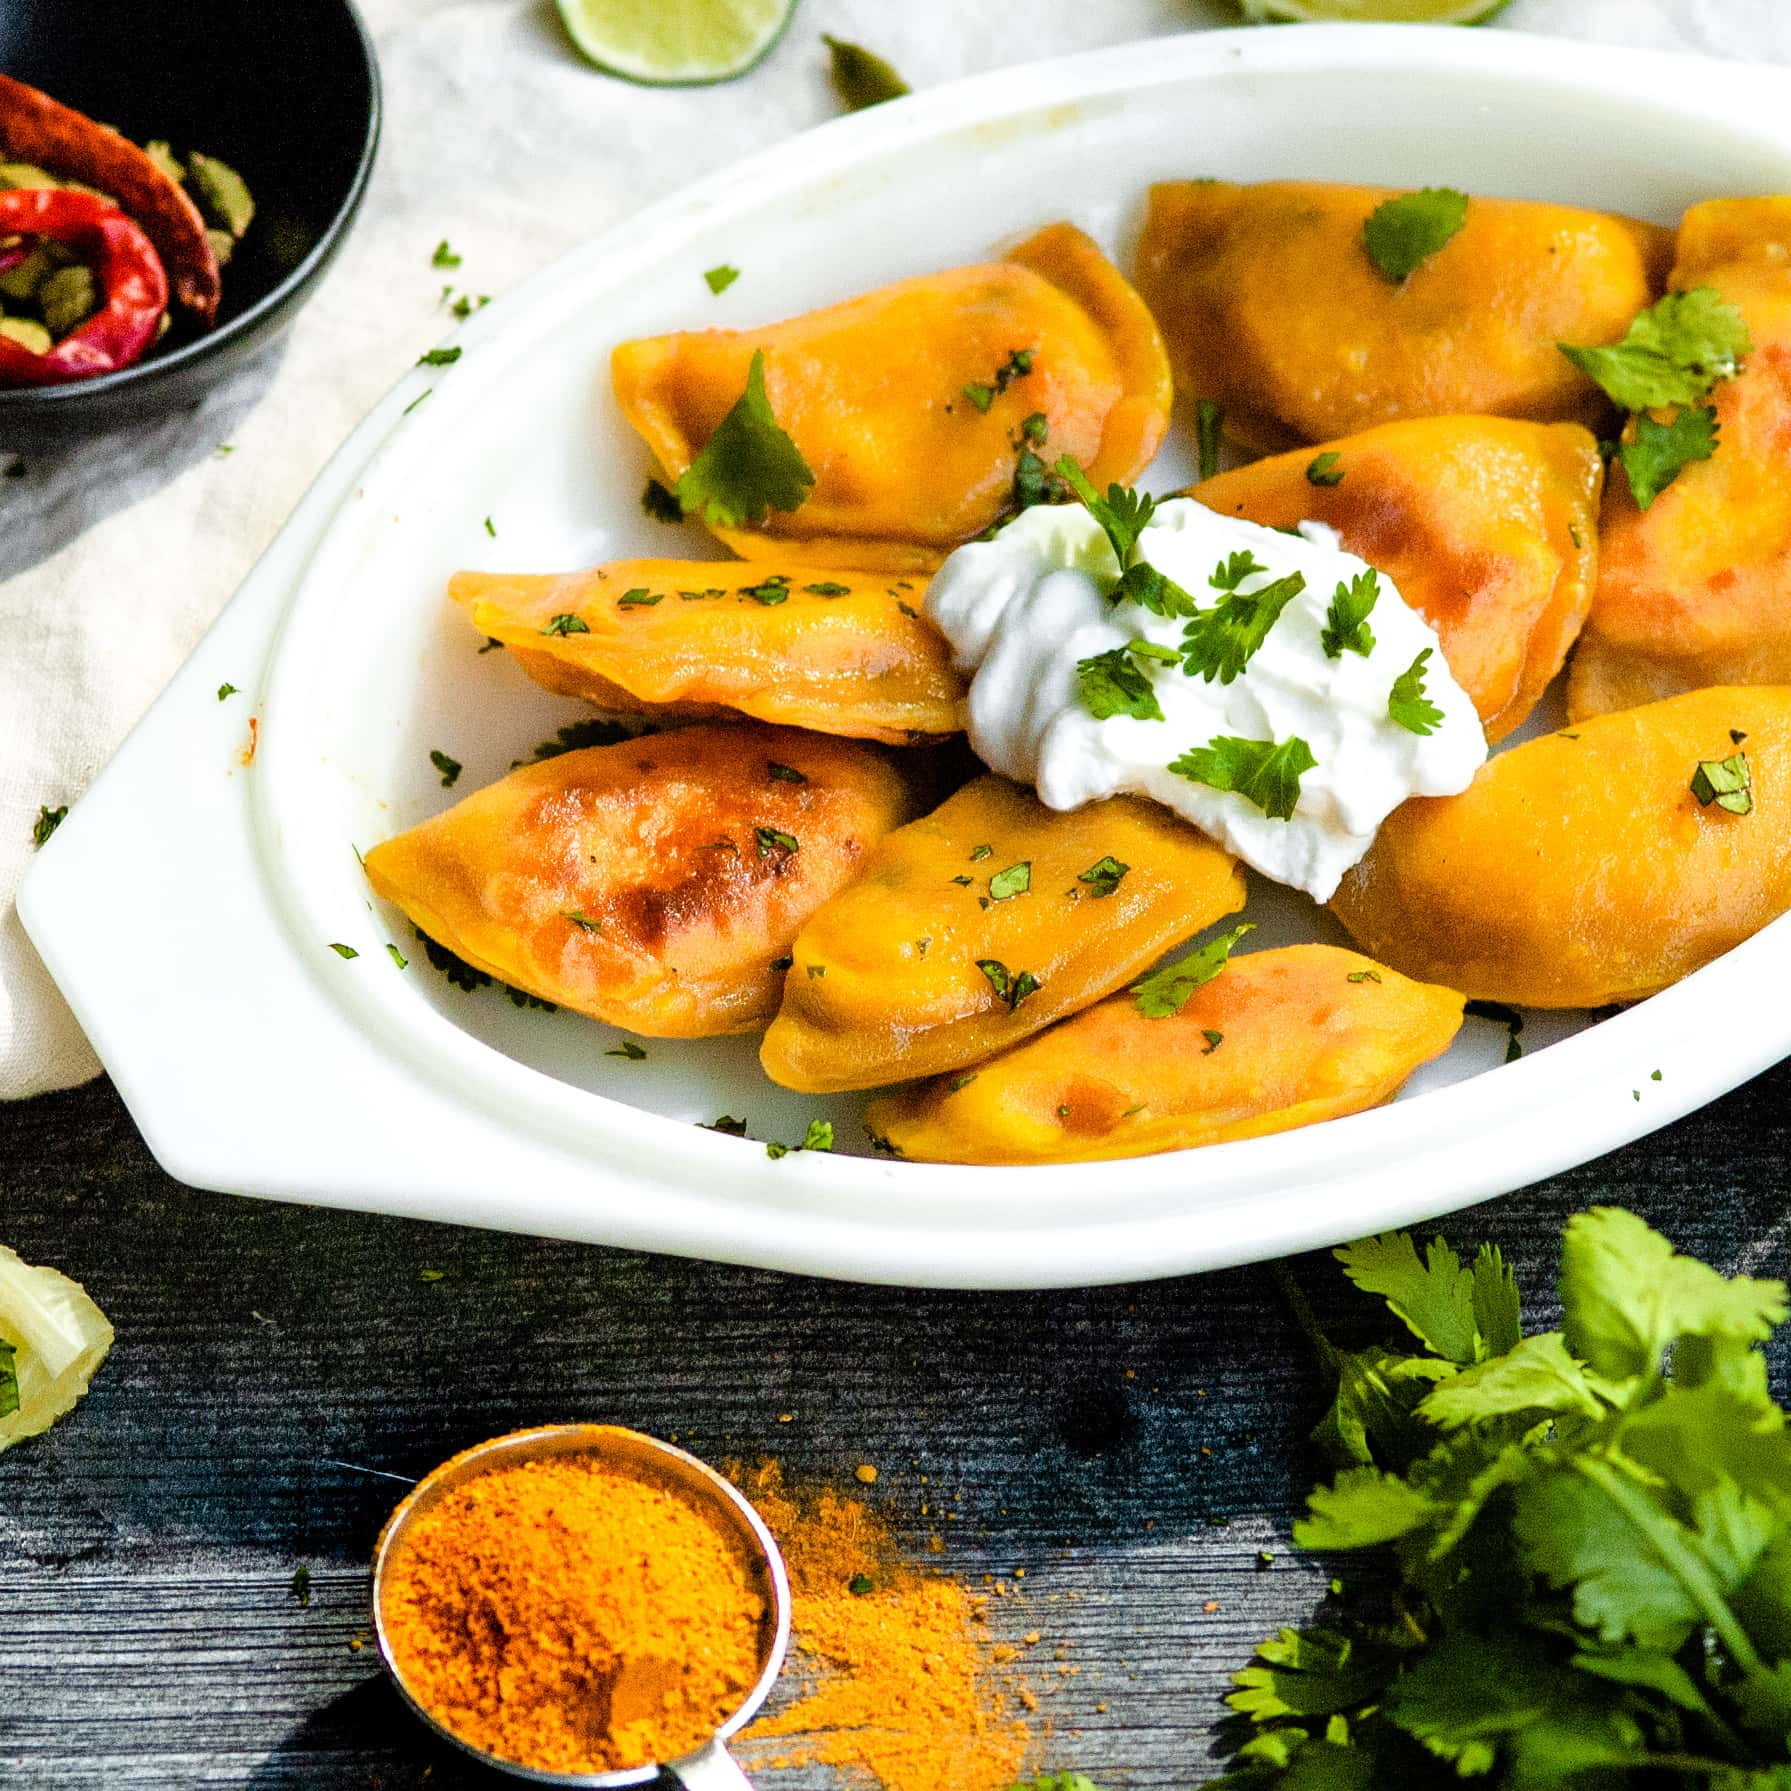 a close cropped shot of an oval platter with tikka masala pierogis on it. a dollop of greek yogurt sits on top of the platter, which is garnished with cilantro. a small measuring spoon with a tikka masala spice blend is on the counter in front of the platter, as is a bunch of cilantro.